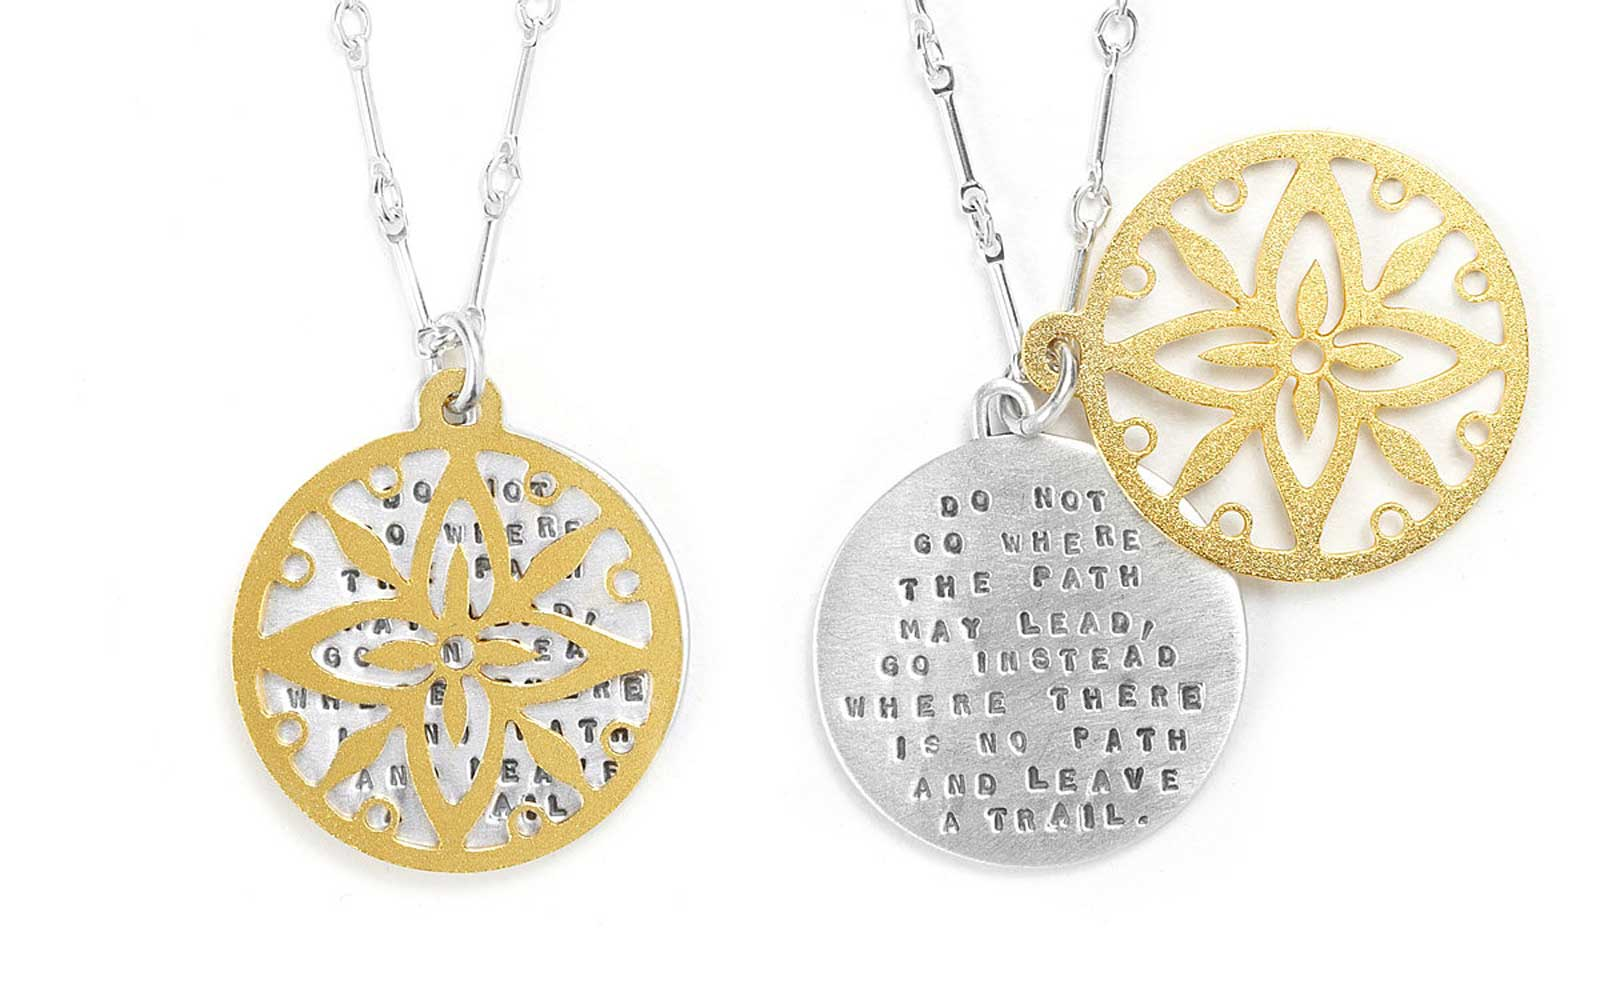 Leave a Trail Necklace